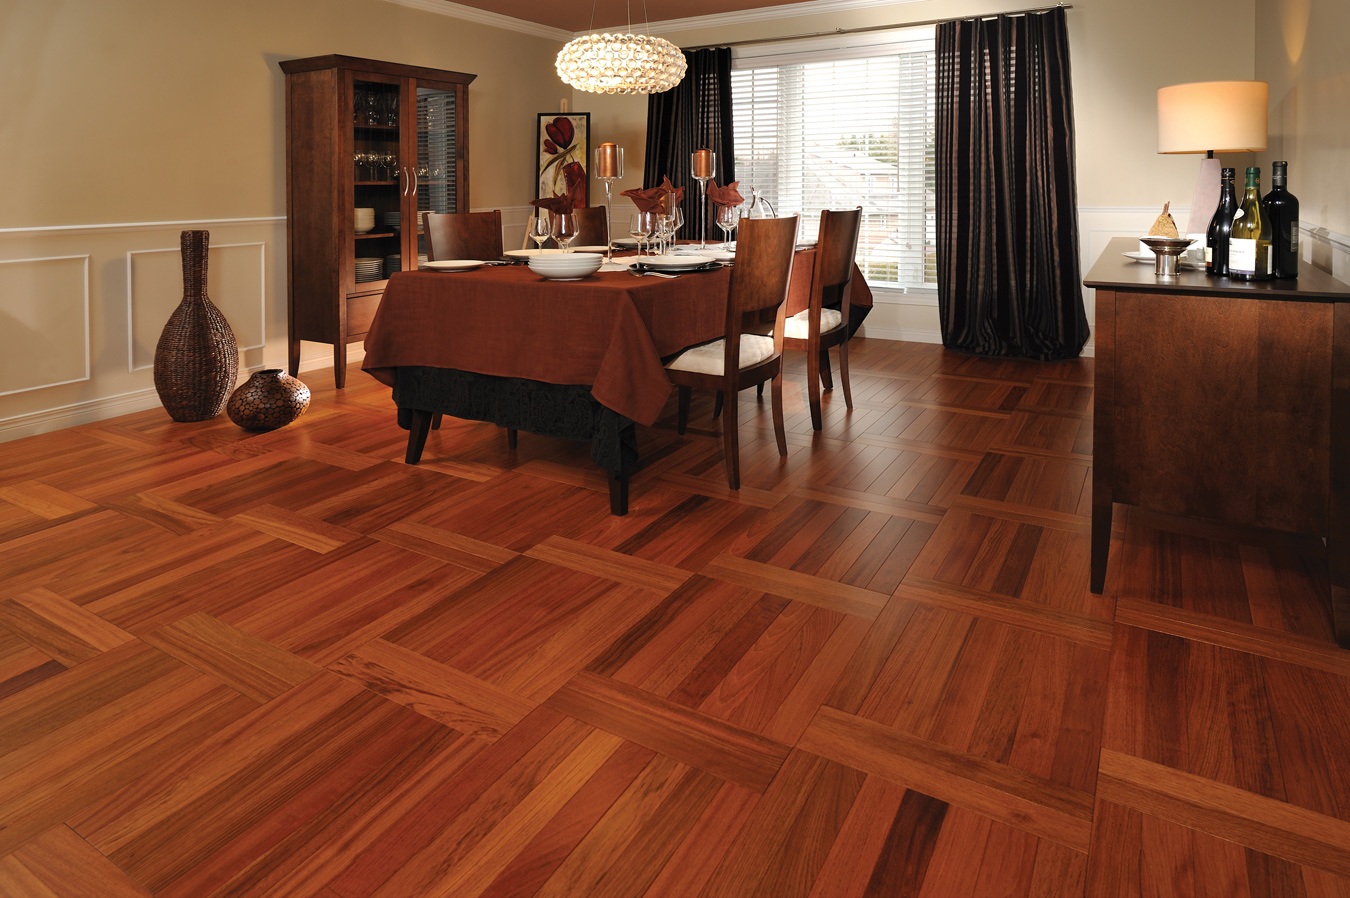 15 popular ideas and designs for hardwood floors qnud for Classic floor designs